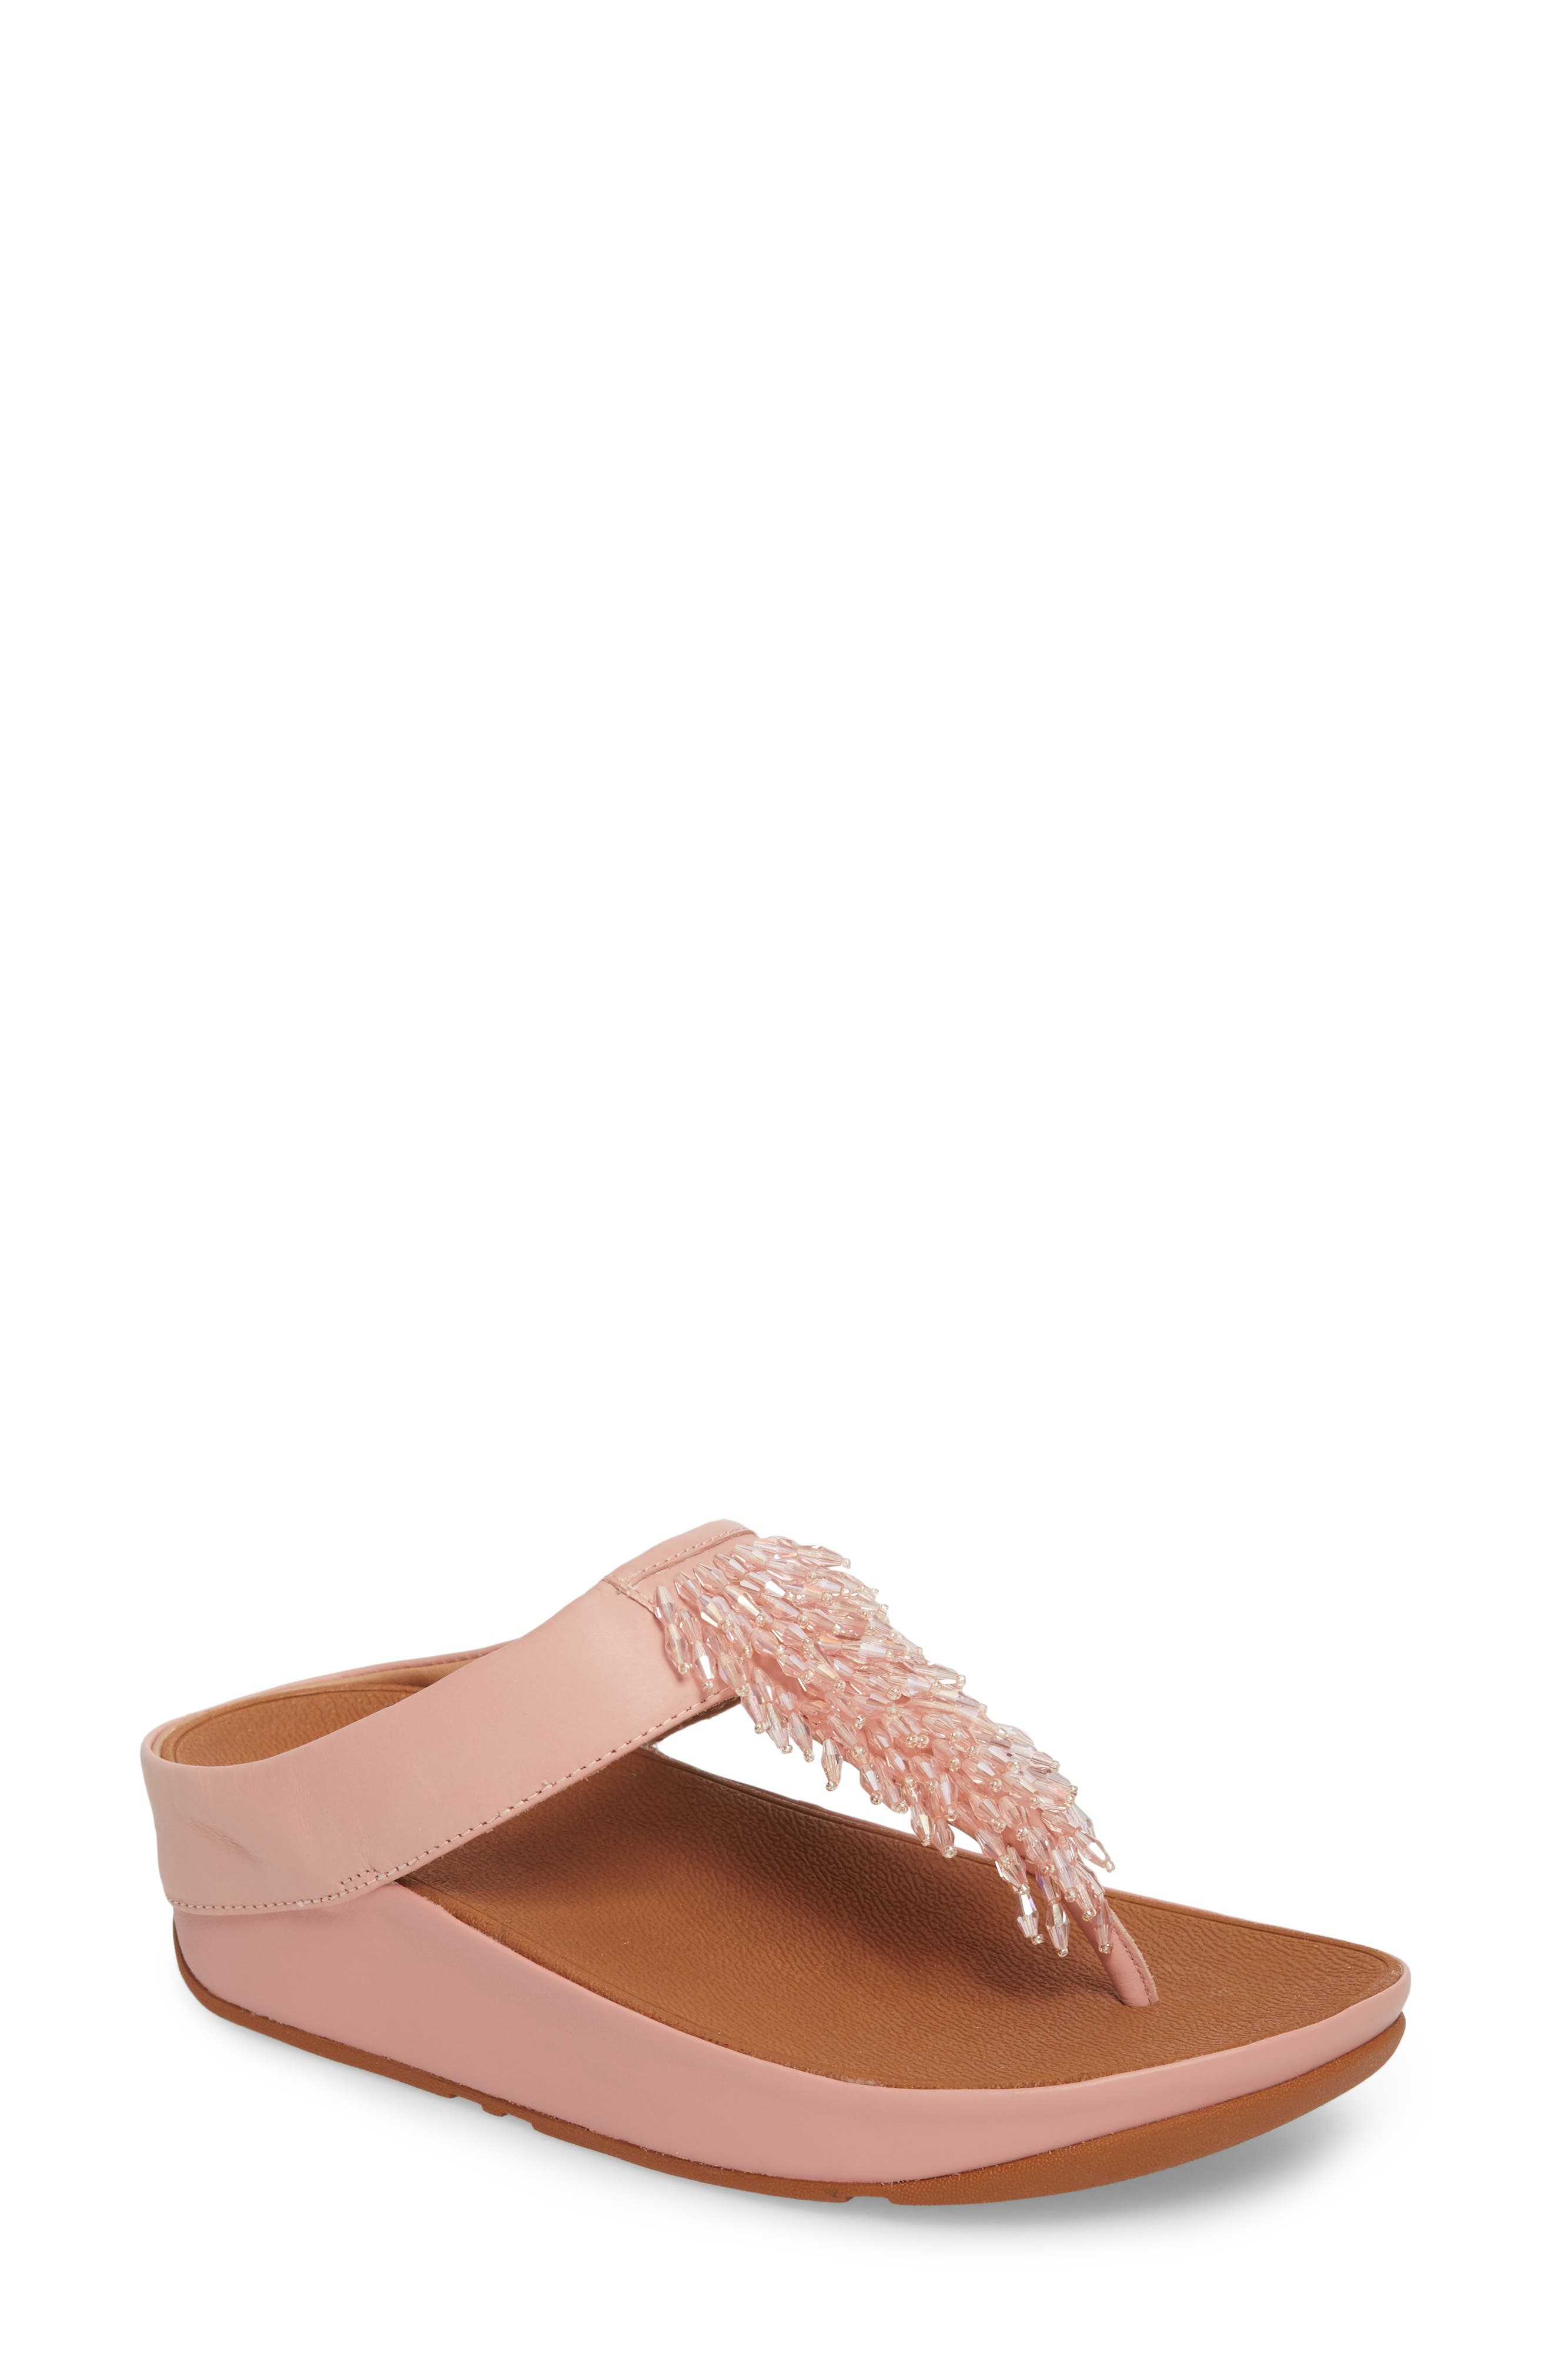 Fitflop Rumba Sandal, Pink